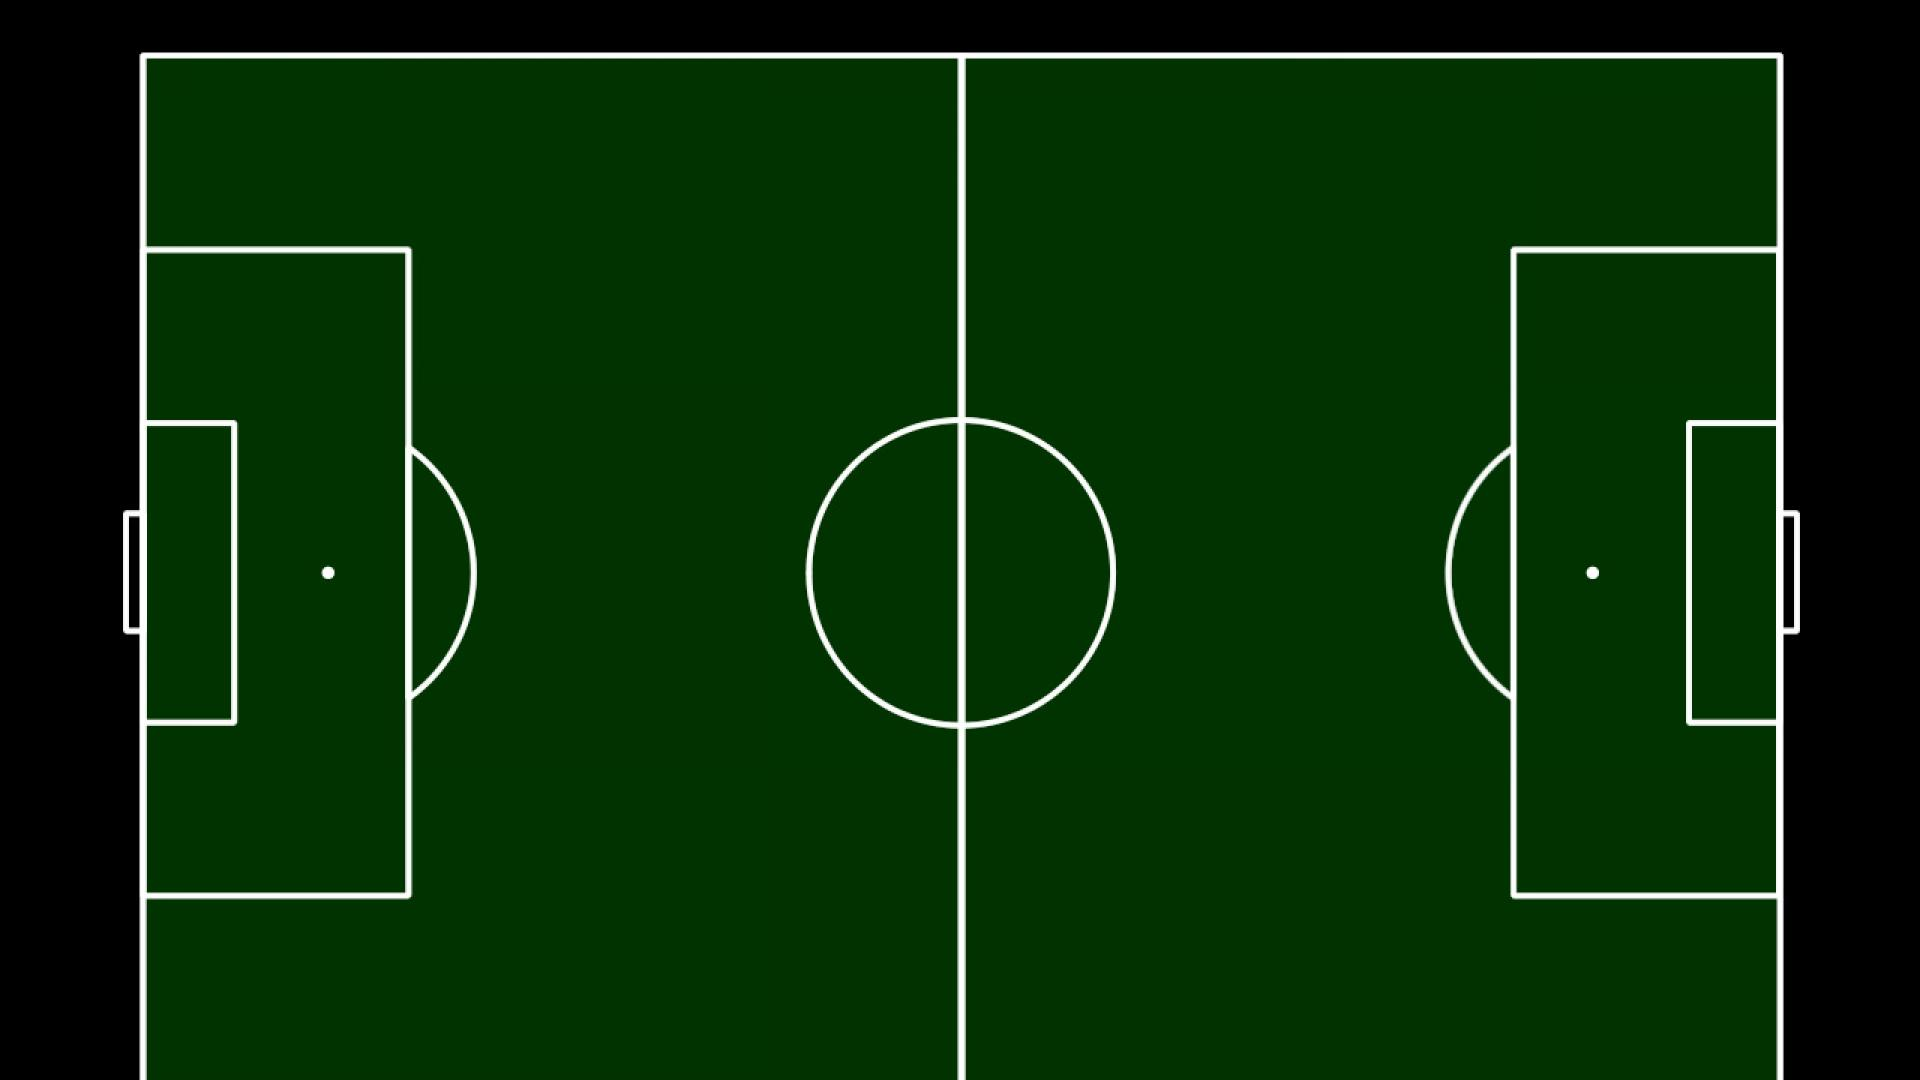 Free Soccer Field Clipart, Download Free Clip Art, Free Clip.